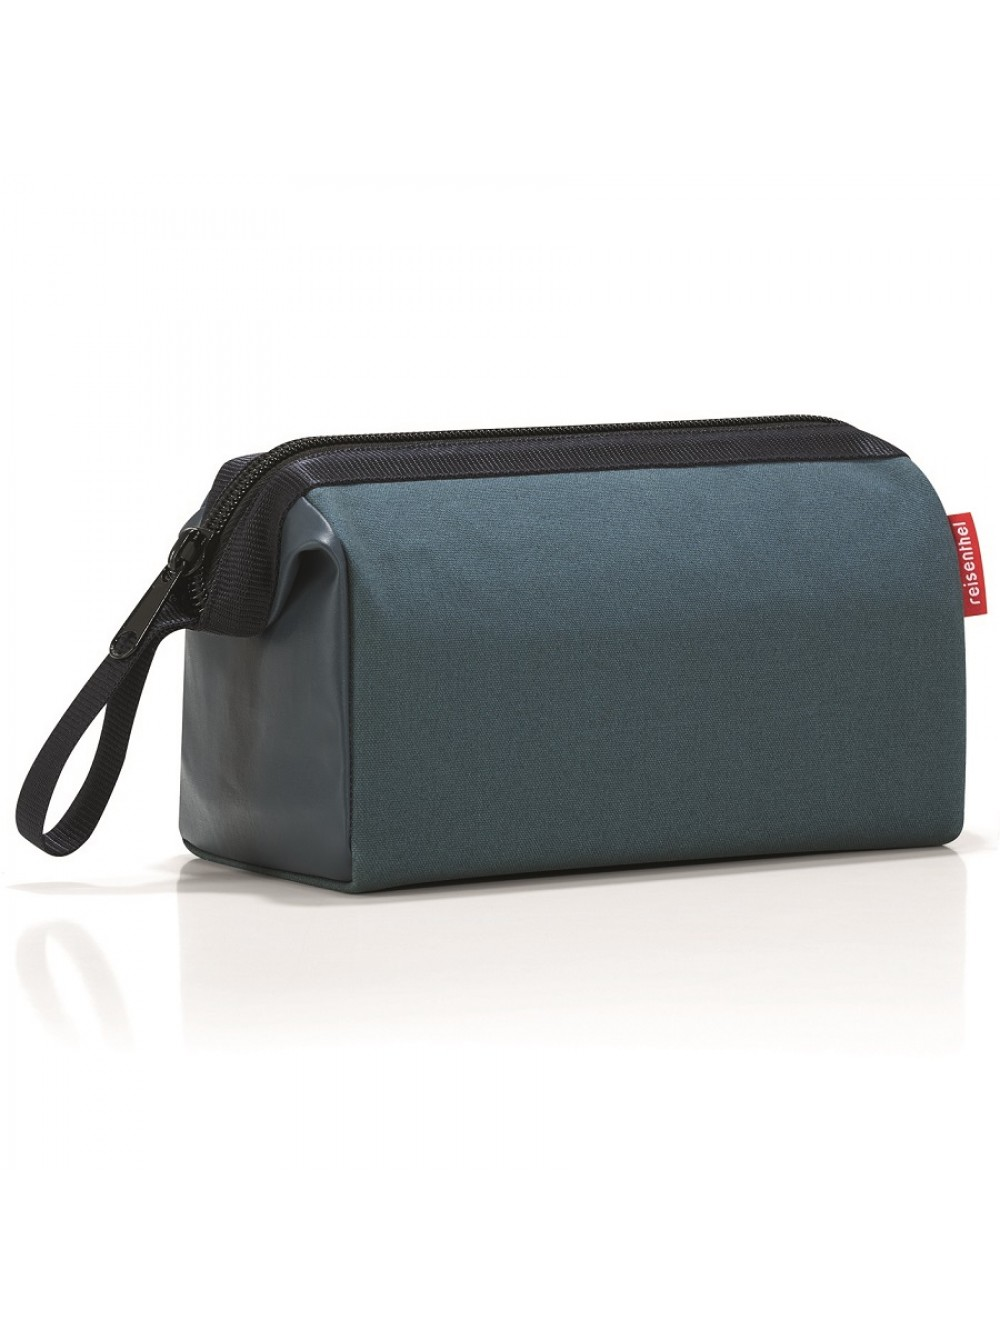 Косметичка travelcosmetic canvas blue